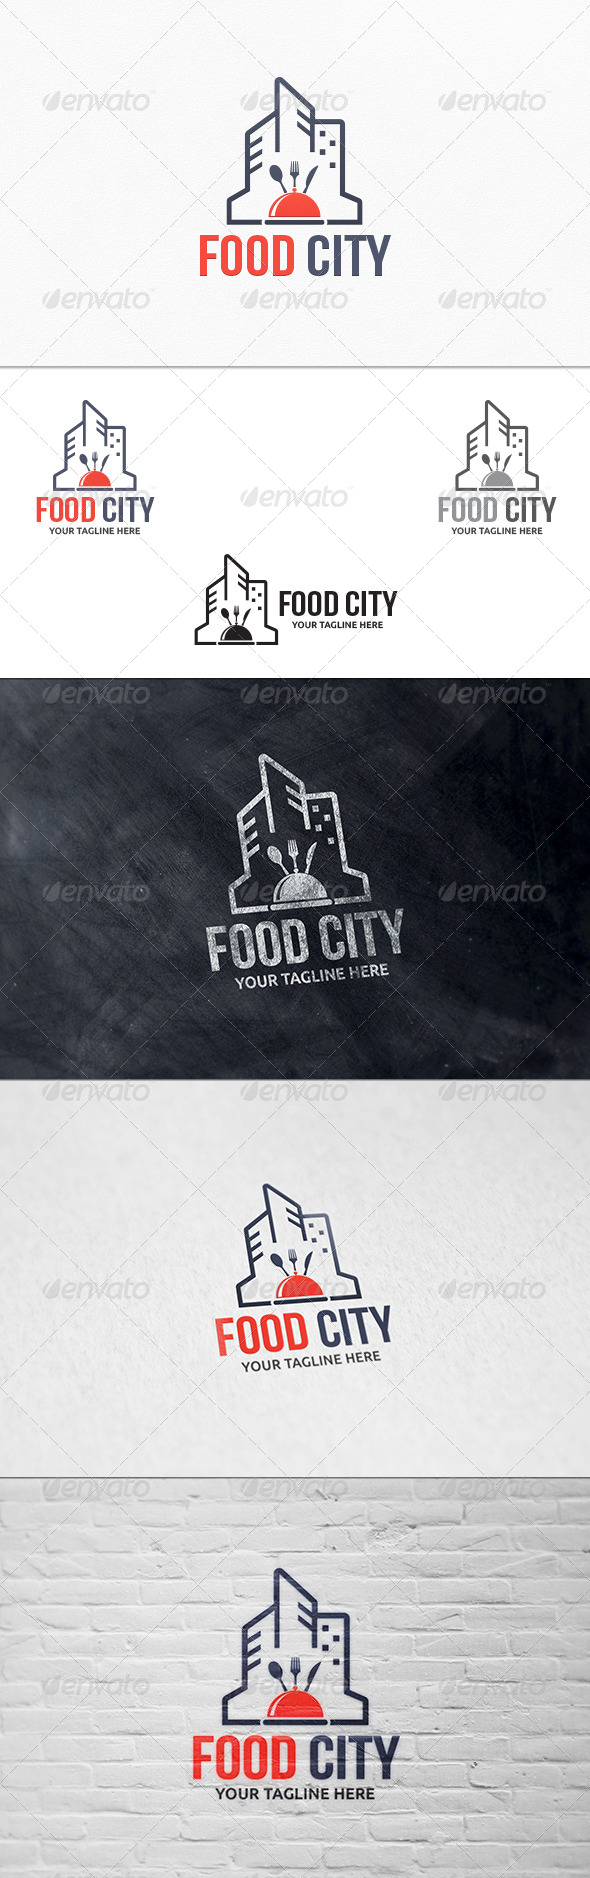 GraphicRiver Food City Logo Template 7457189